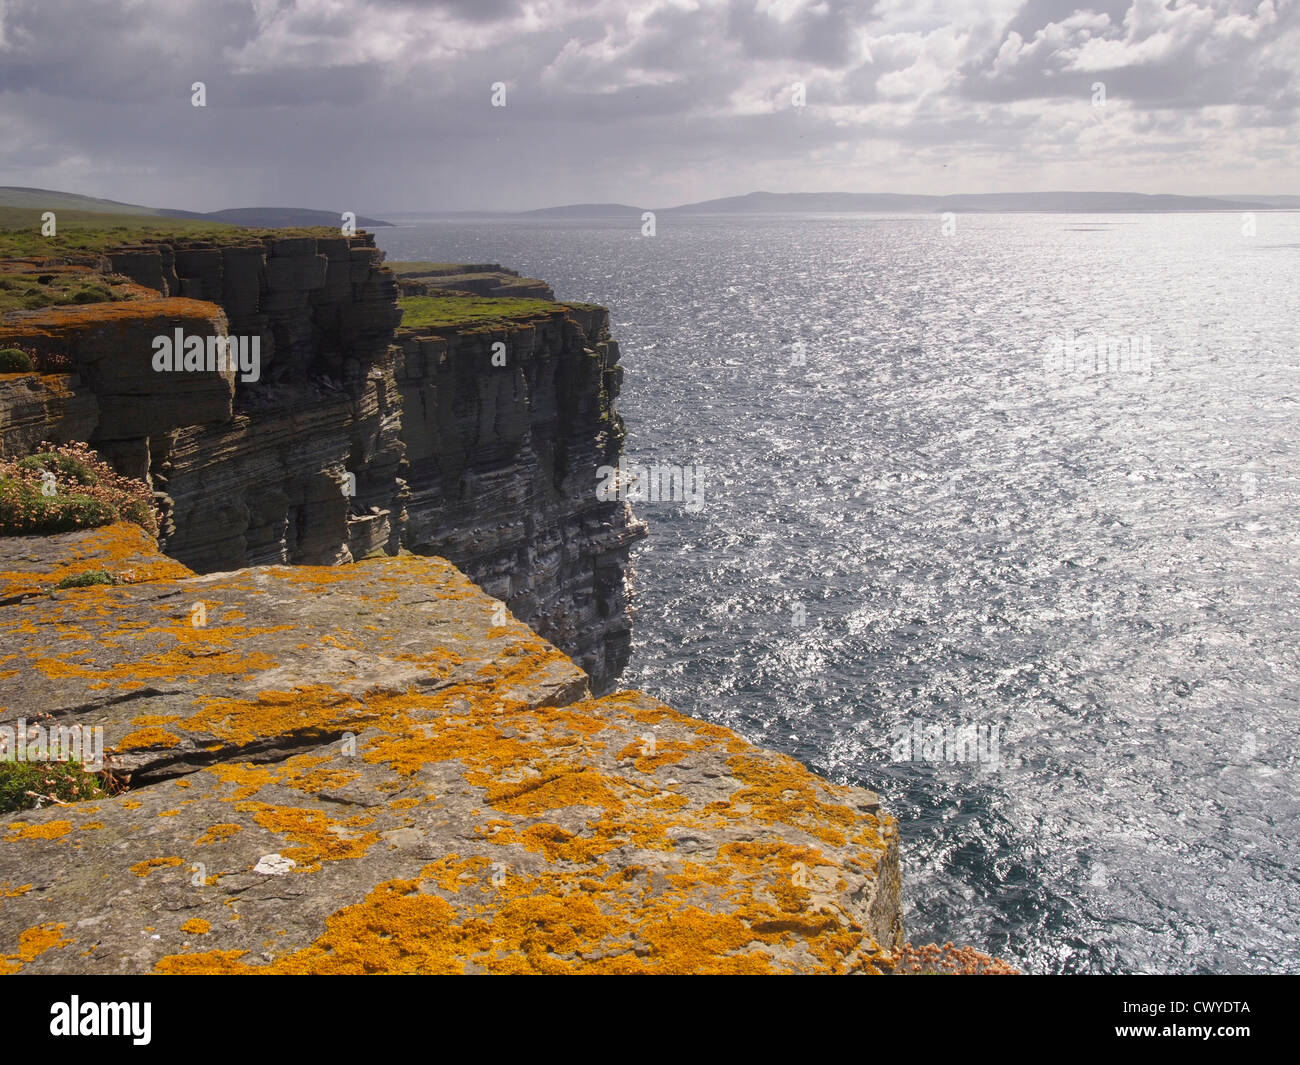 View towards Rousay from Westray, Orkney, Scotland - Stock Image